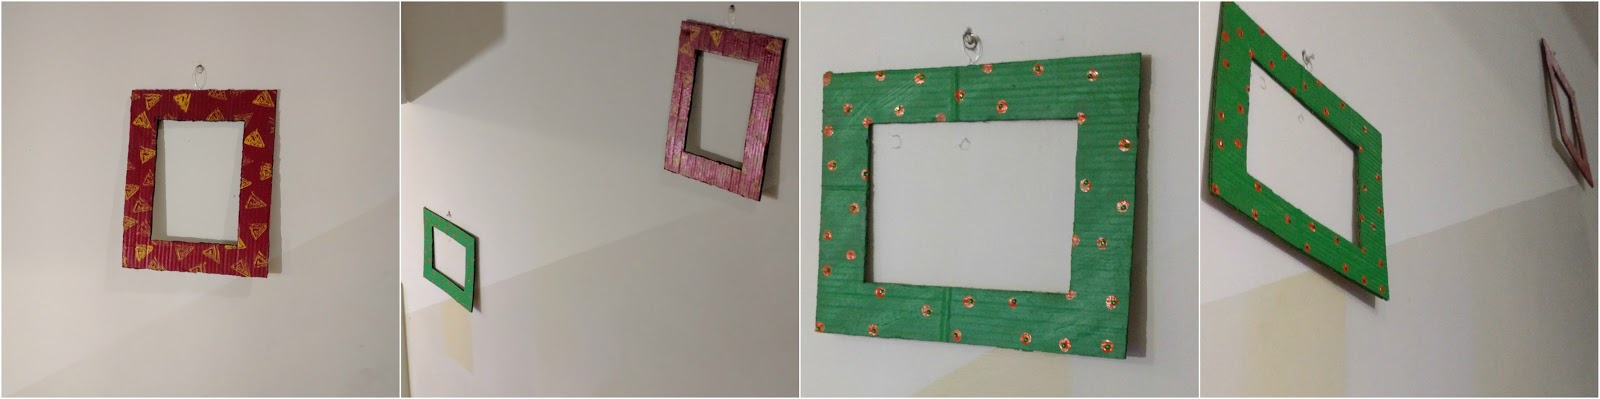 Creative Fish At Work: How to make photo frames in under 30 minutes